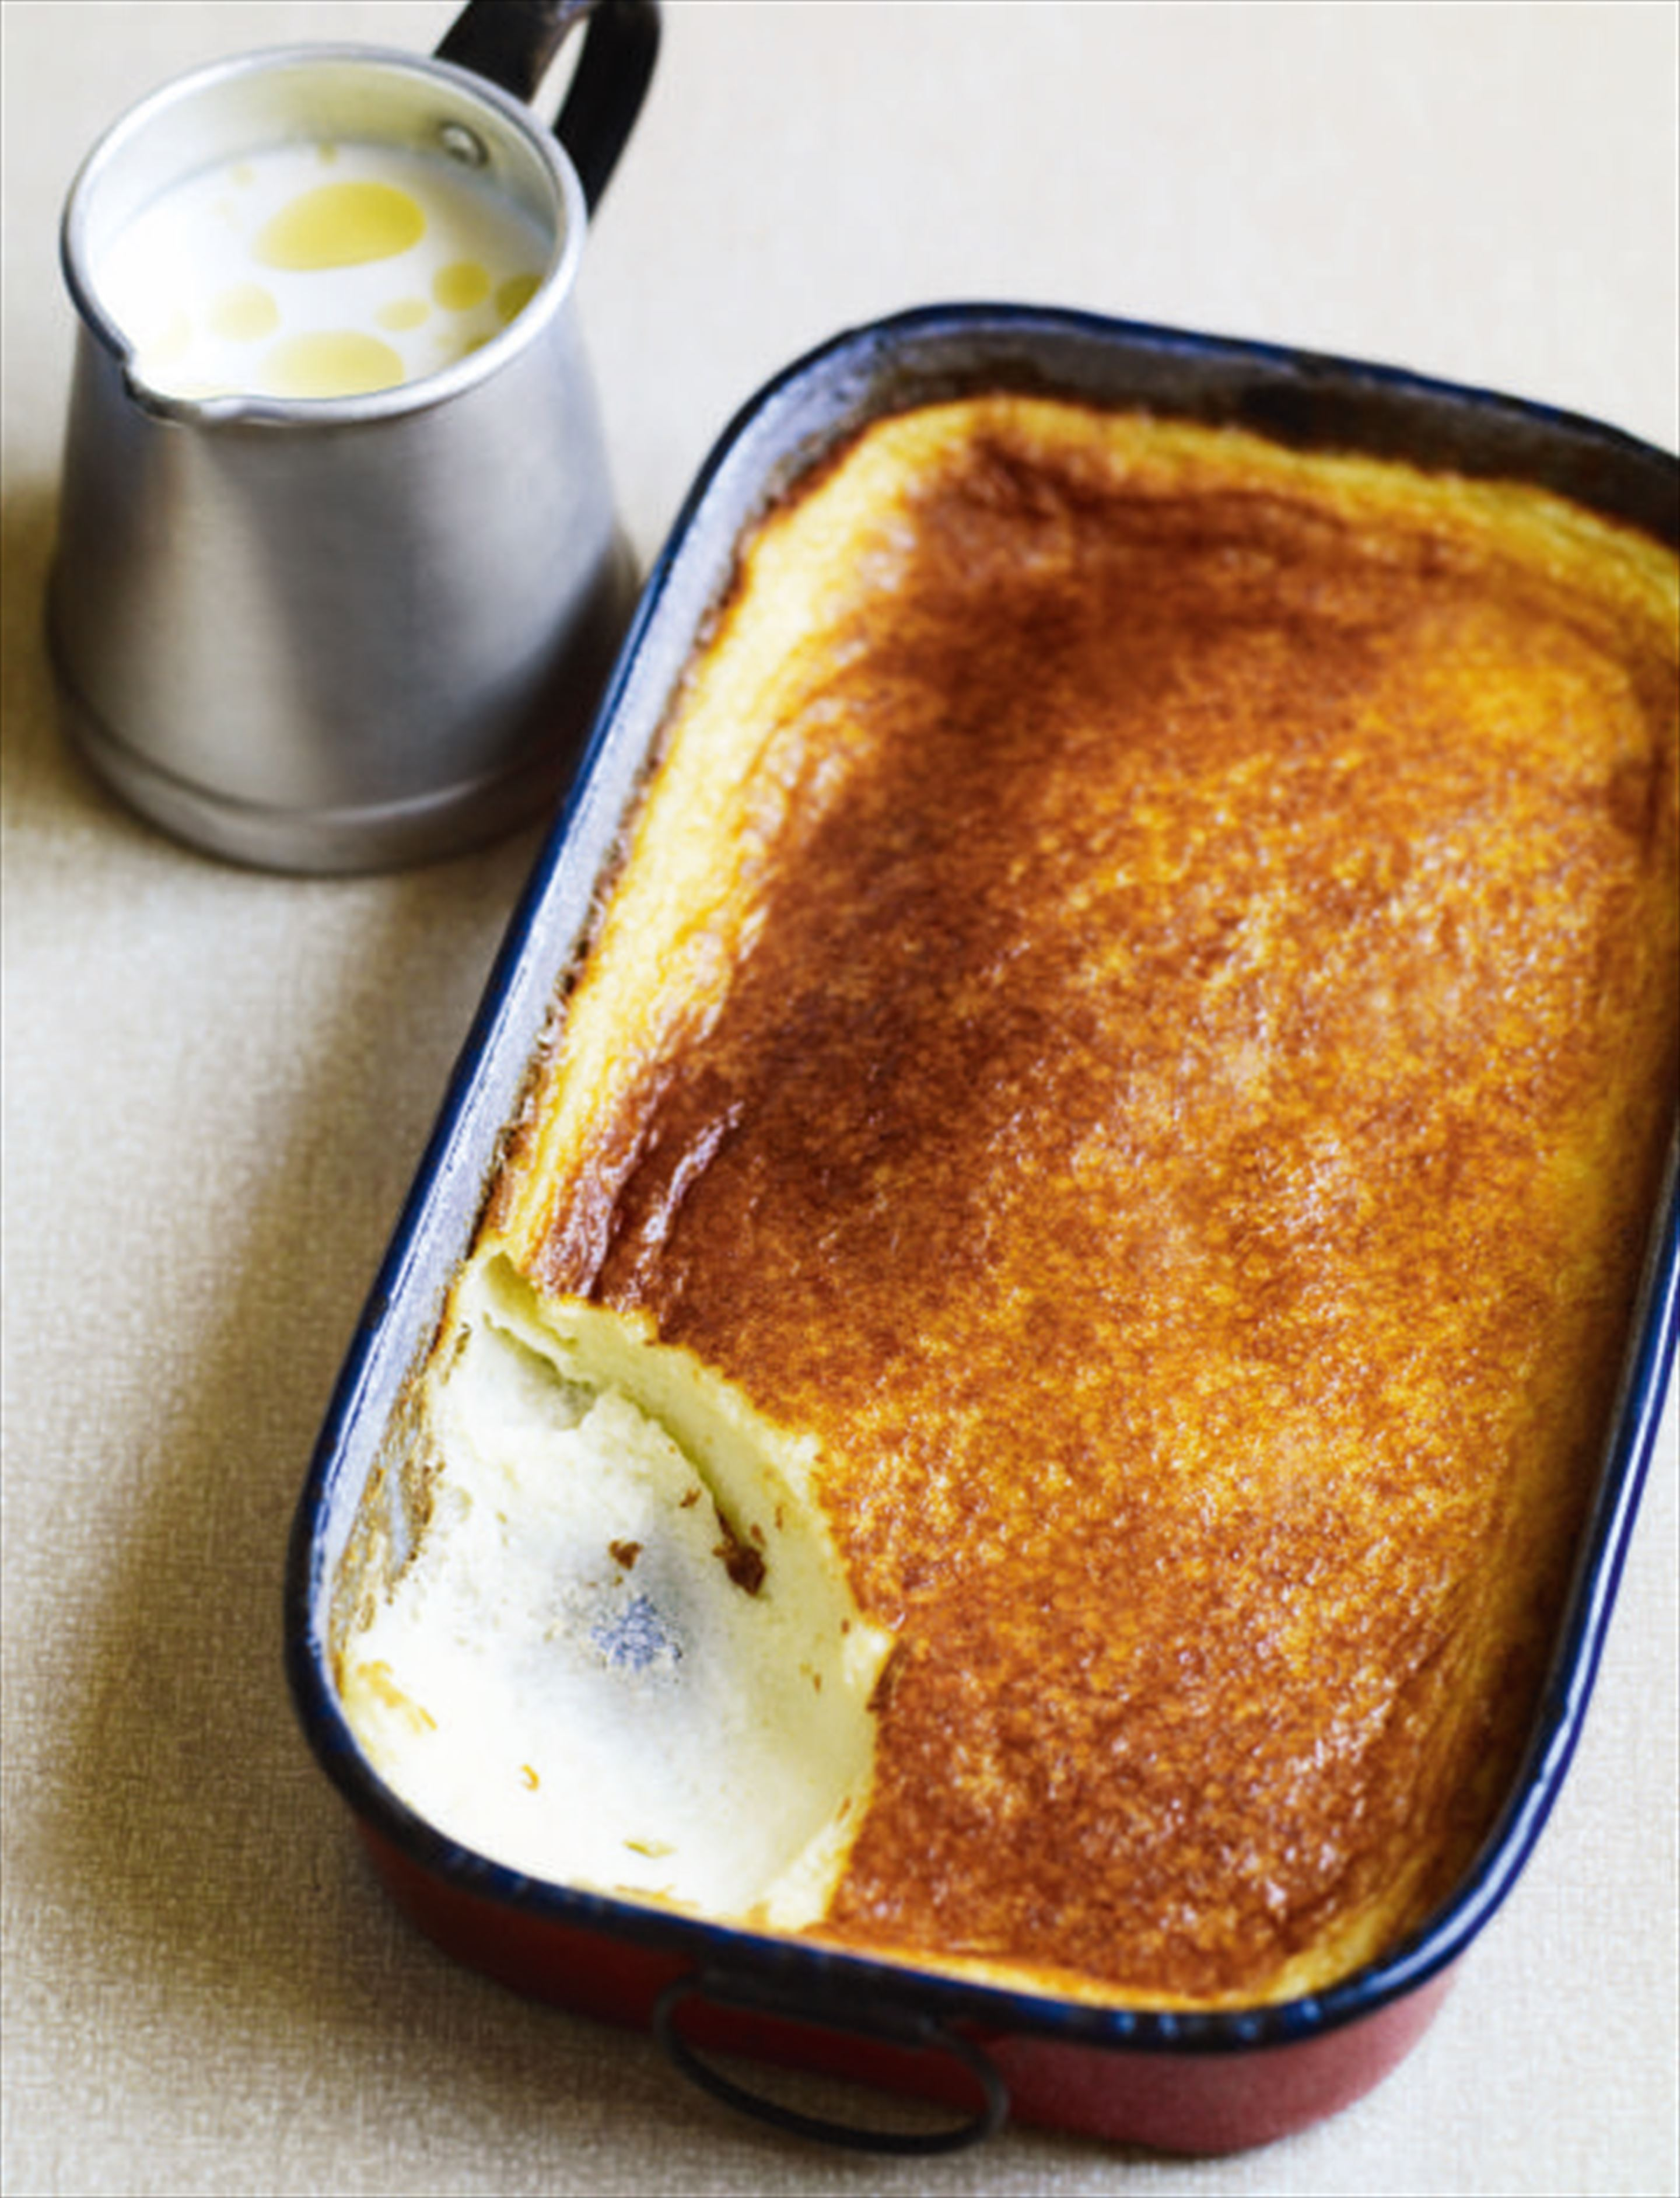 Baked custard with rice milk